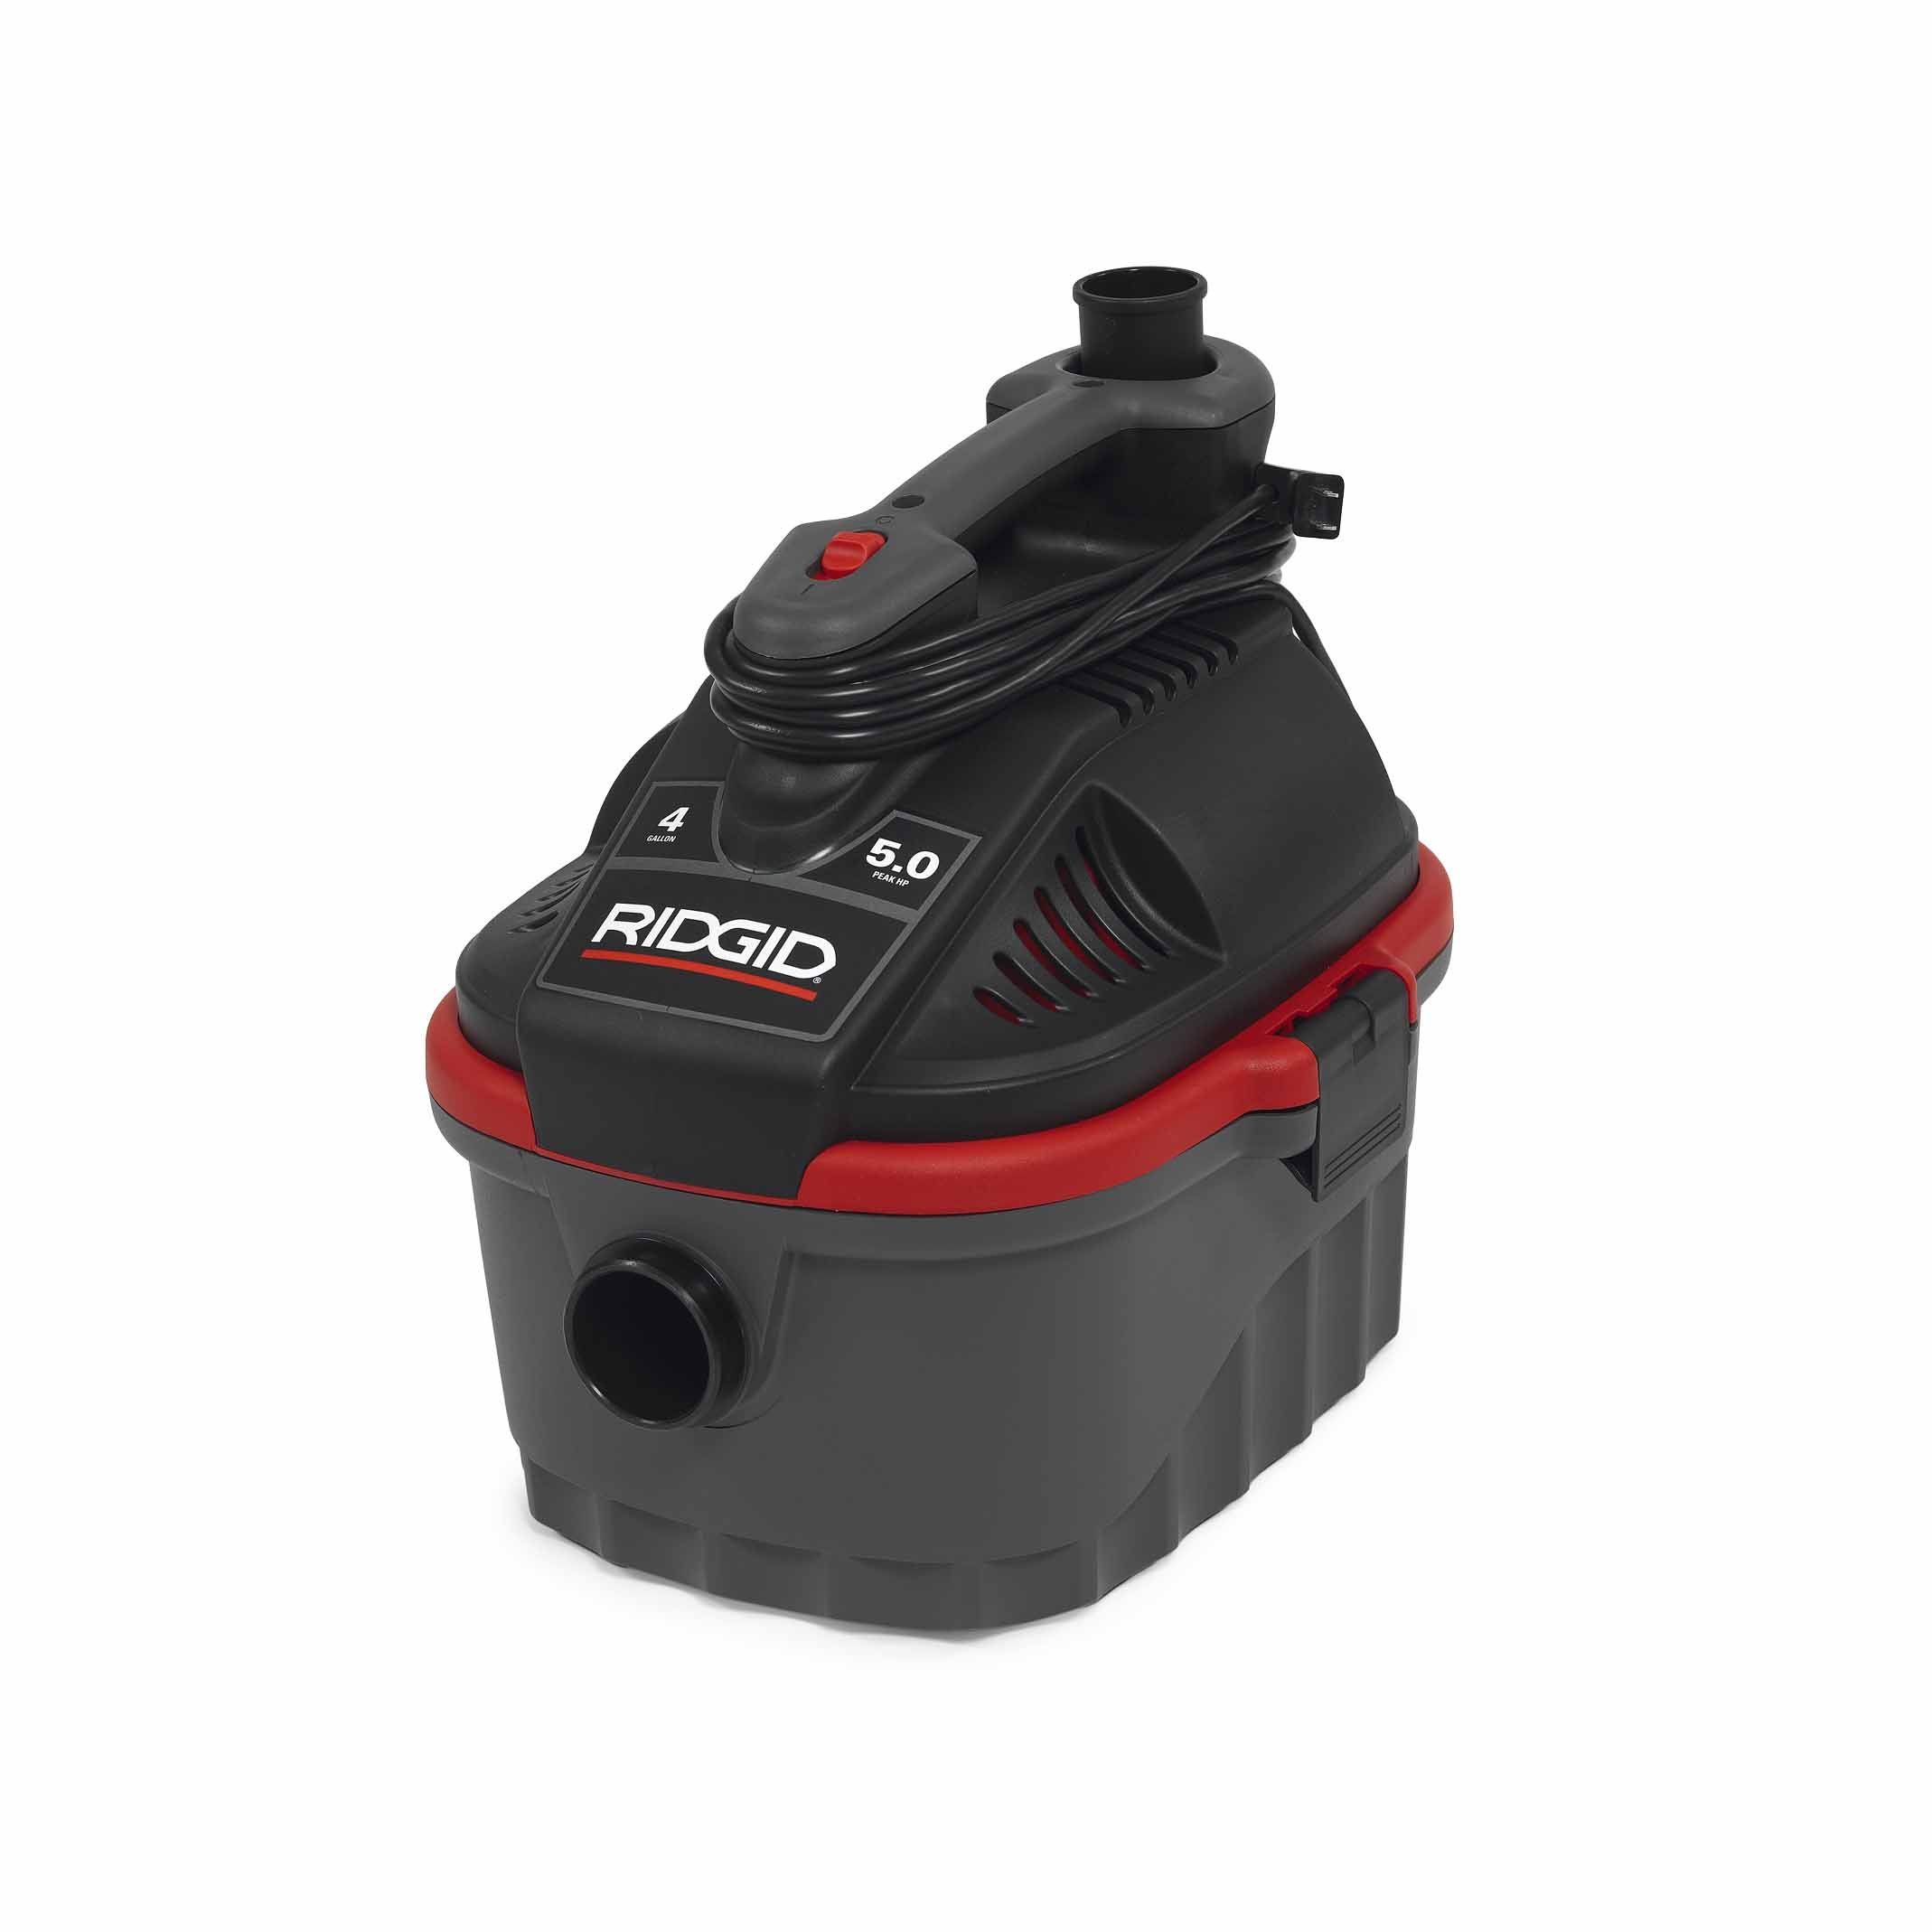 Ridgid 50313 4000RV Wet/Dry Vacuum, 4 gal, Red by Ridgid (Image #3)